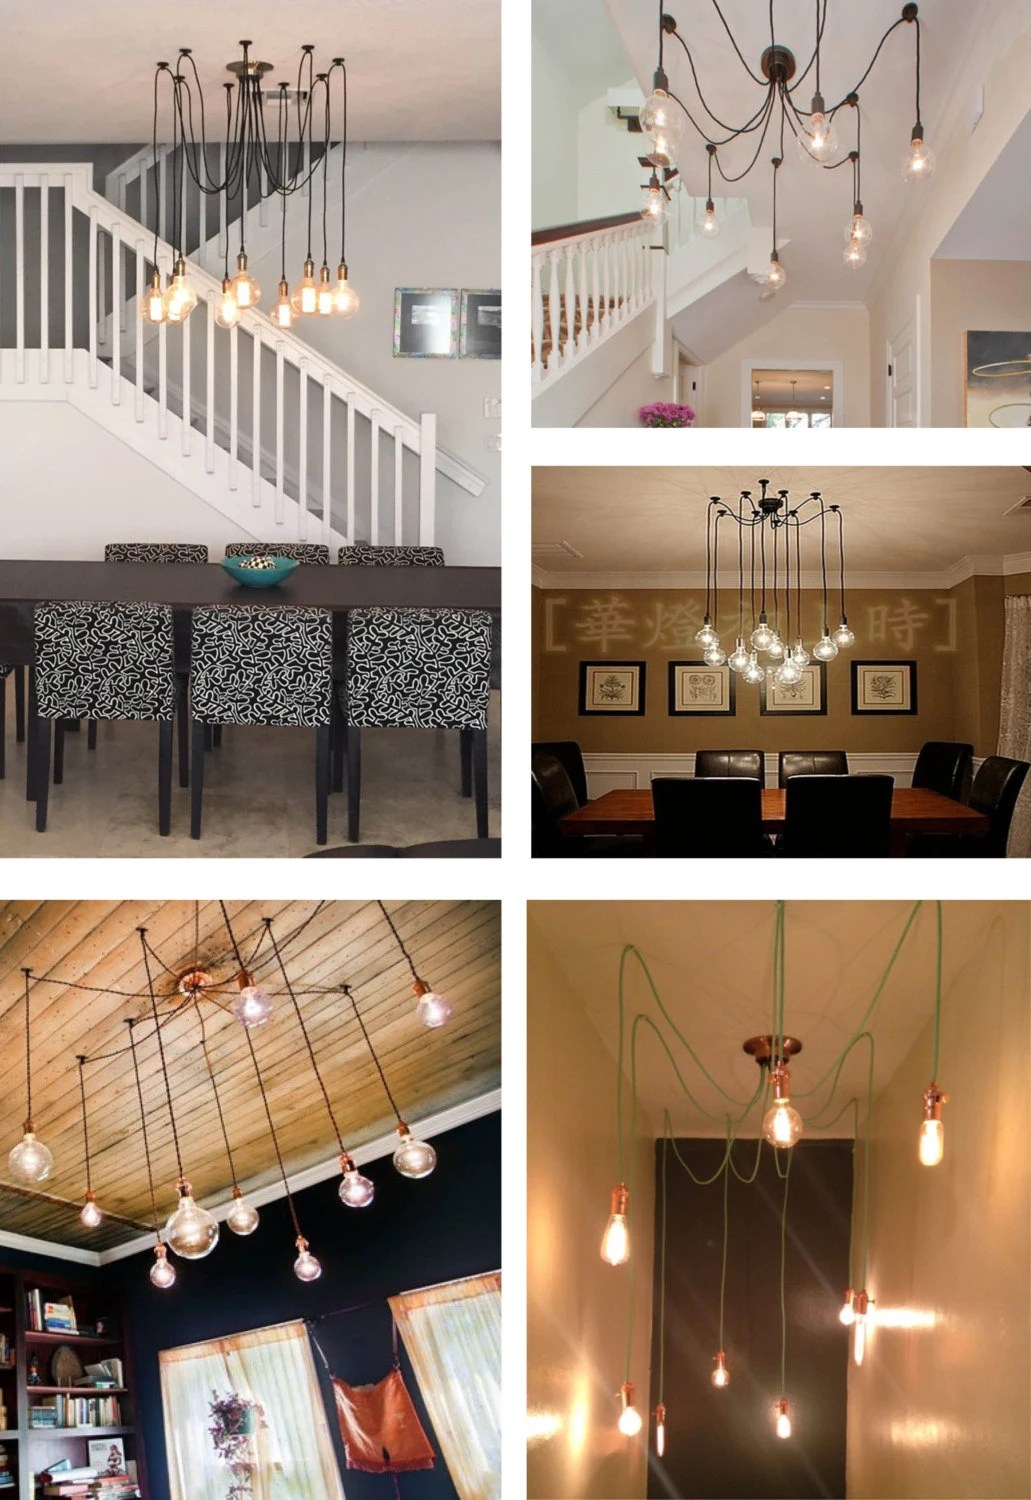 How To Swag A Chandelier 9 Swag Light Multi Pendant Chandelier Modern Chandelier With